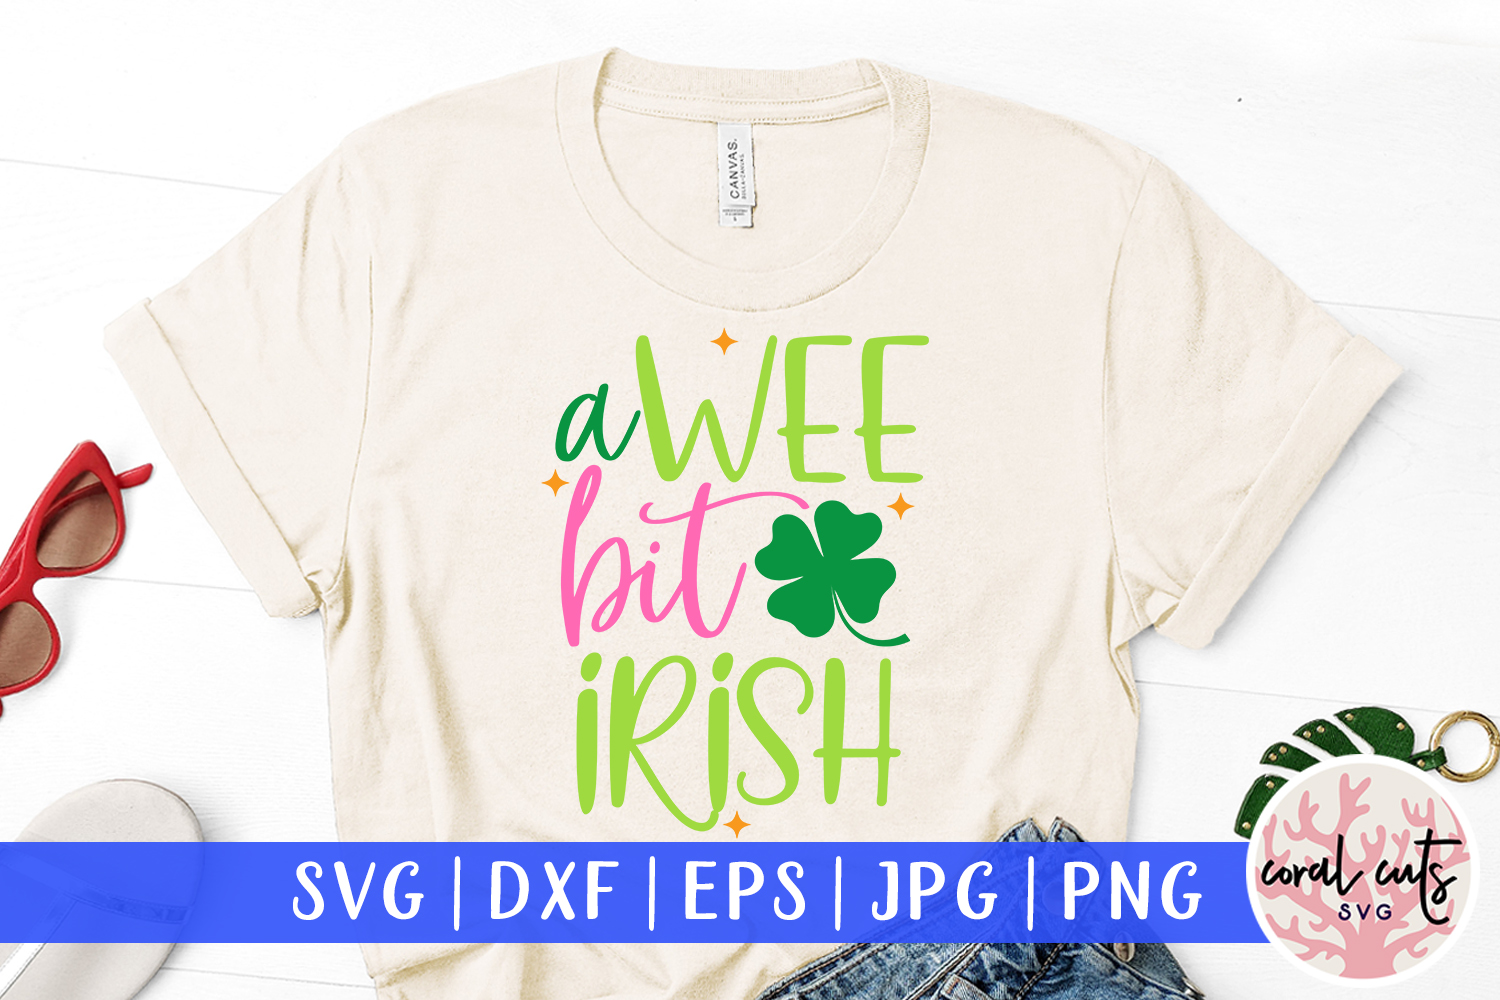 A wee bit irish - St. Patrick's Day SVG EPS DXF PNG example image 1